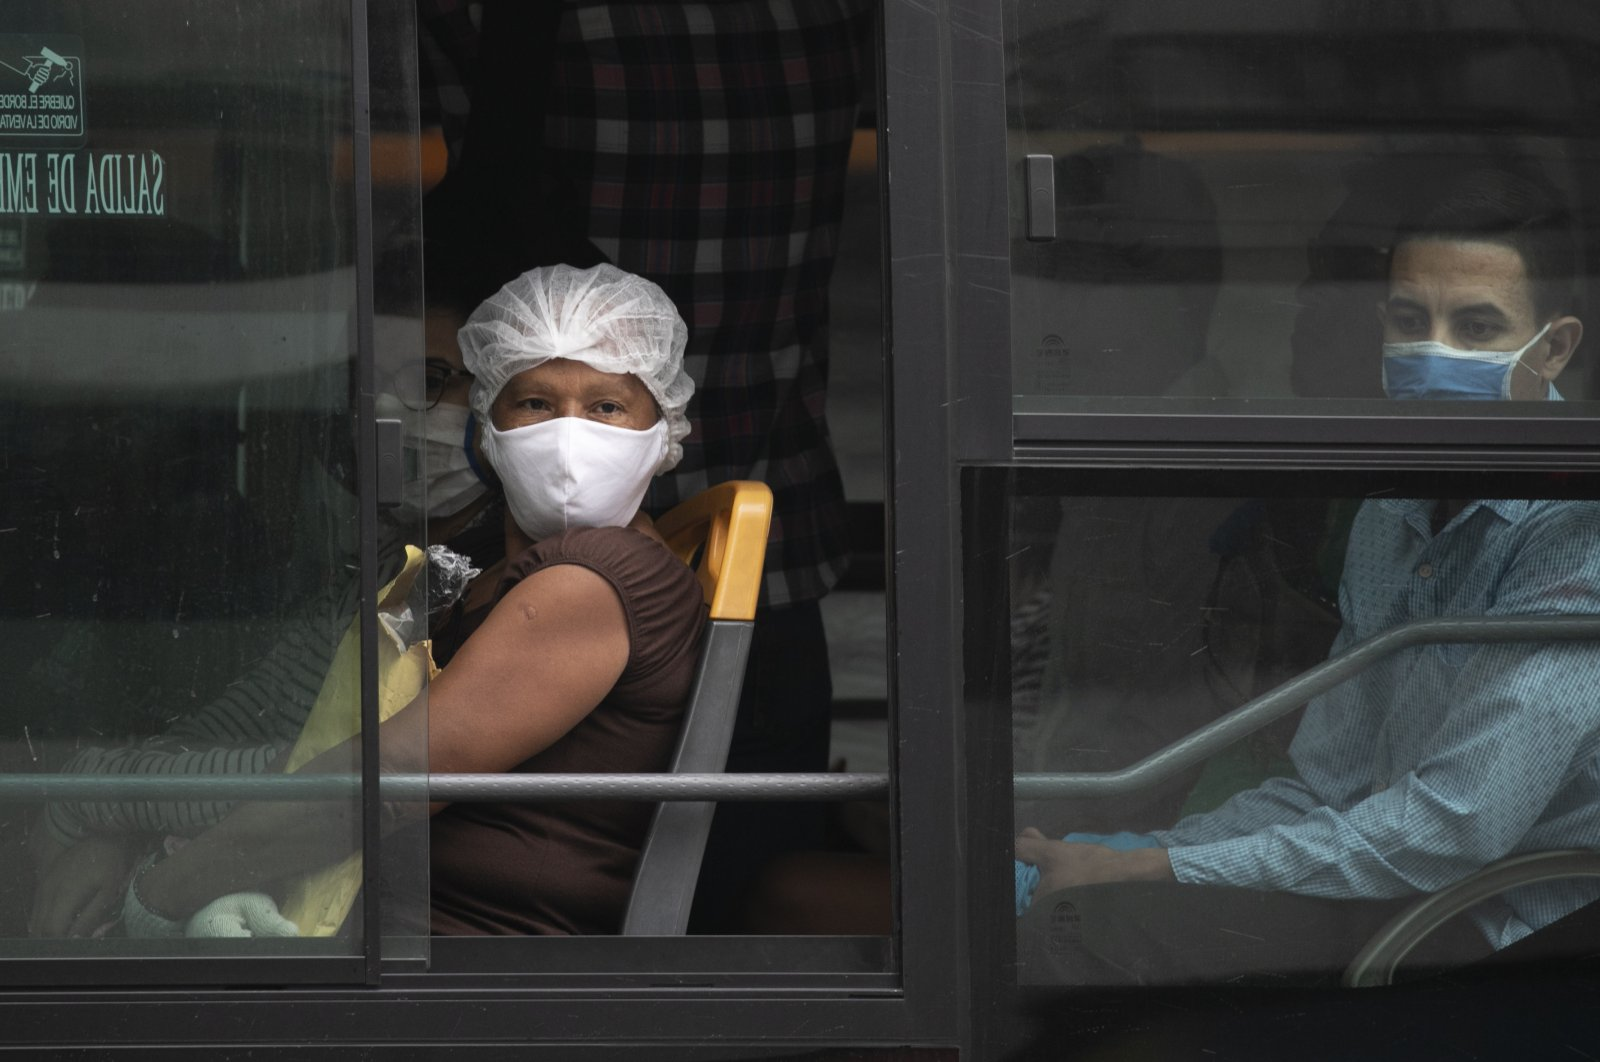 Commuters wearing face masks due to the new coronavirus pandemic ride buses in Caracas, Venezuela, June 1, 2020. (AP Photo)